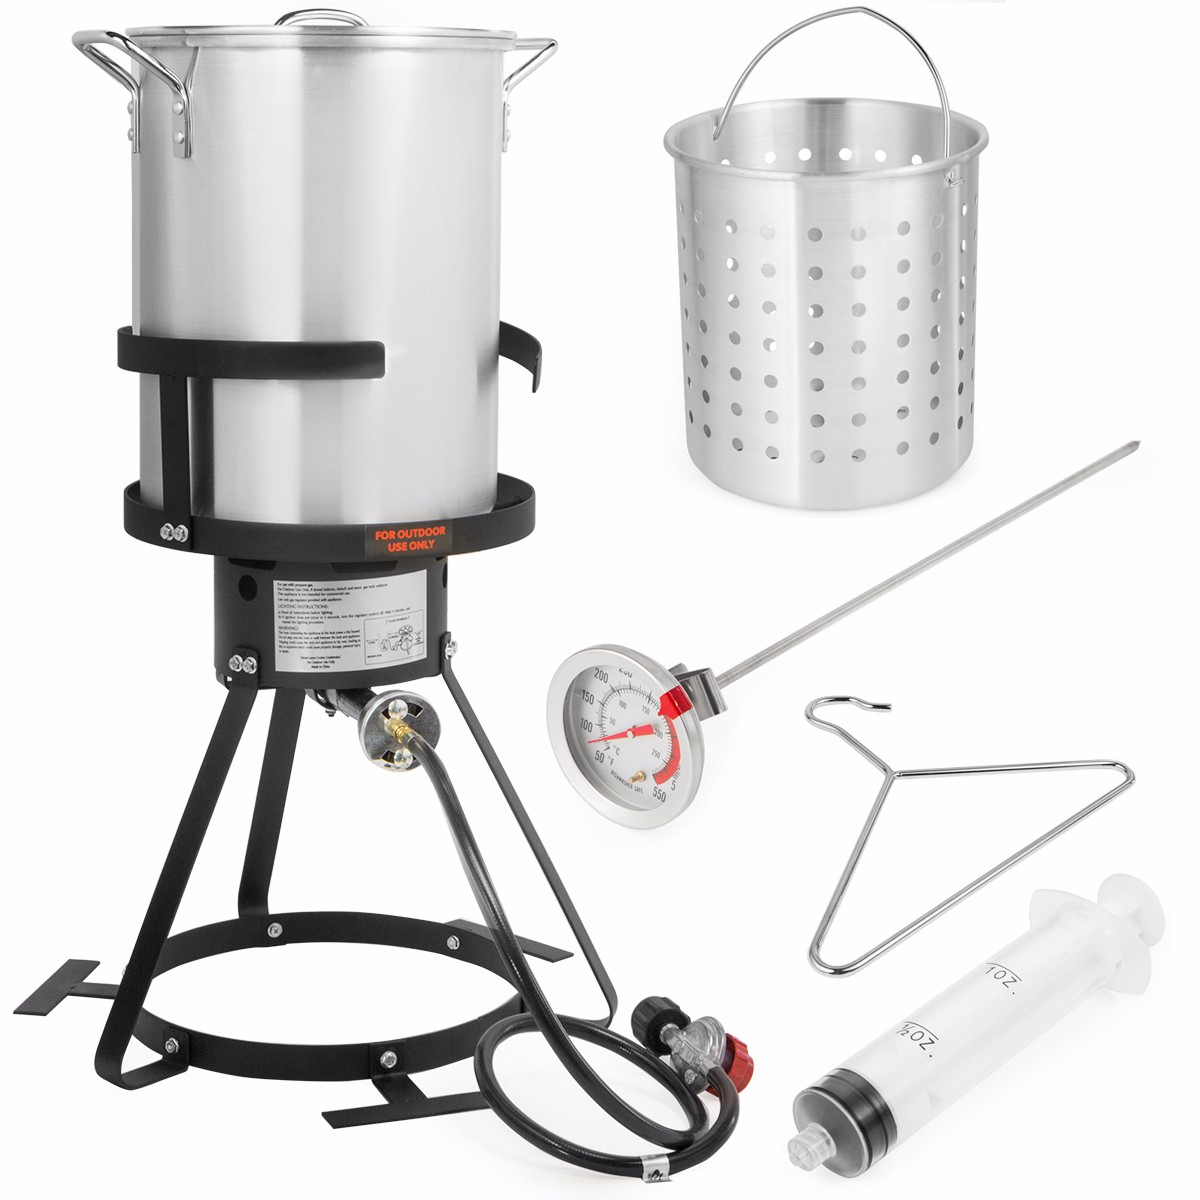 STKUSA 30 QT Turkey Aluminum Fryer Pot and Gas Stove Burner Stand, 6 Pc Set